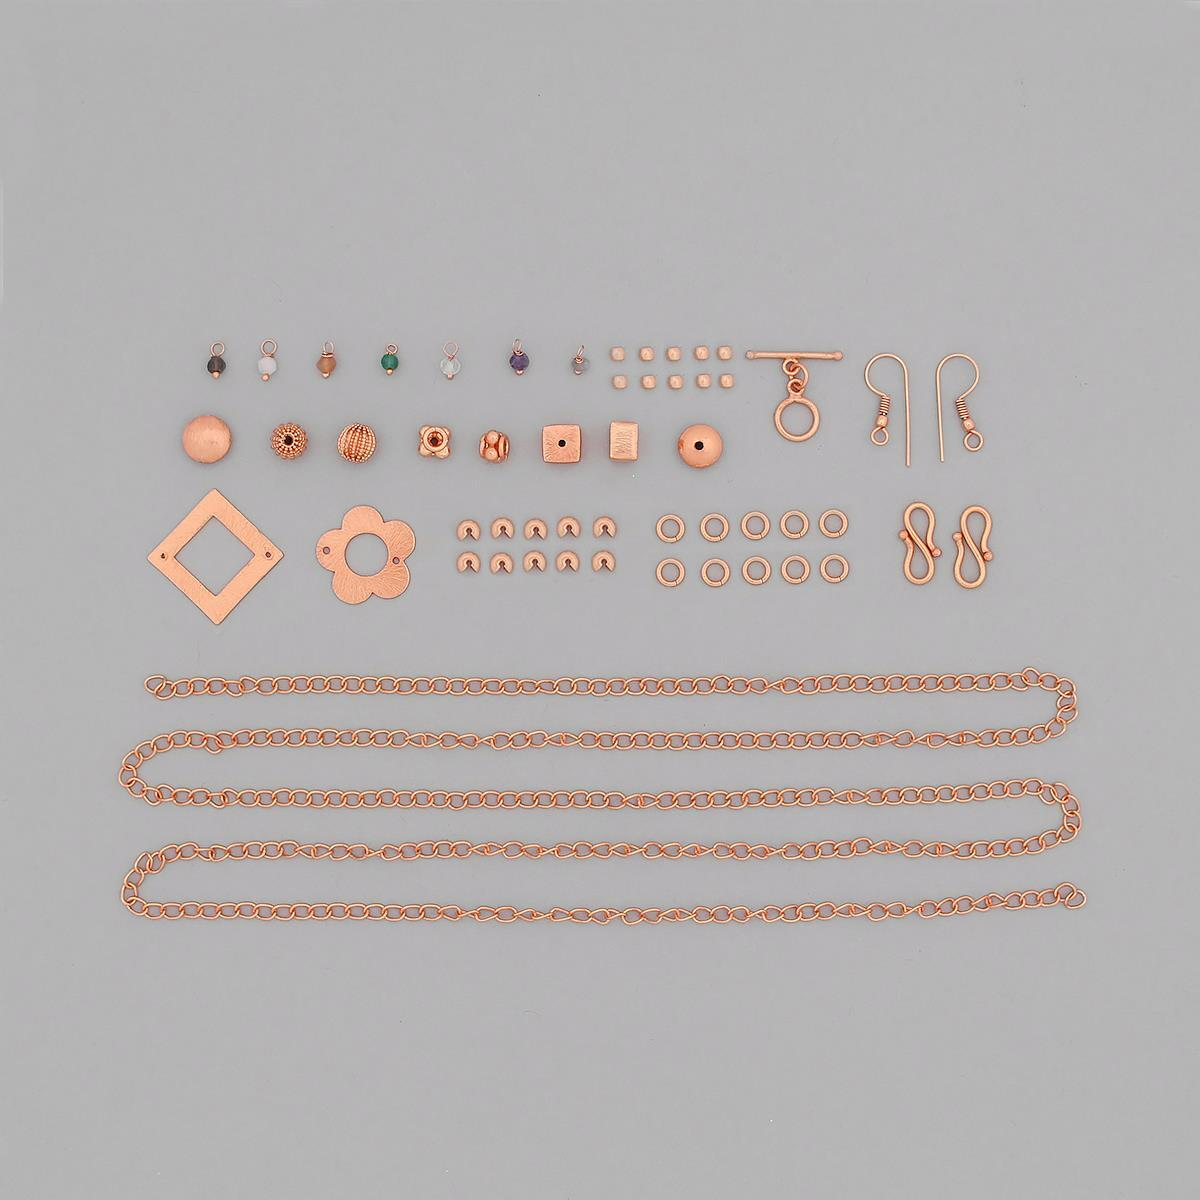 Rose Gold Plated Copper Jewellery Findings Kit with Approx 525cts